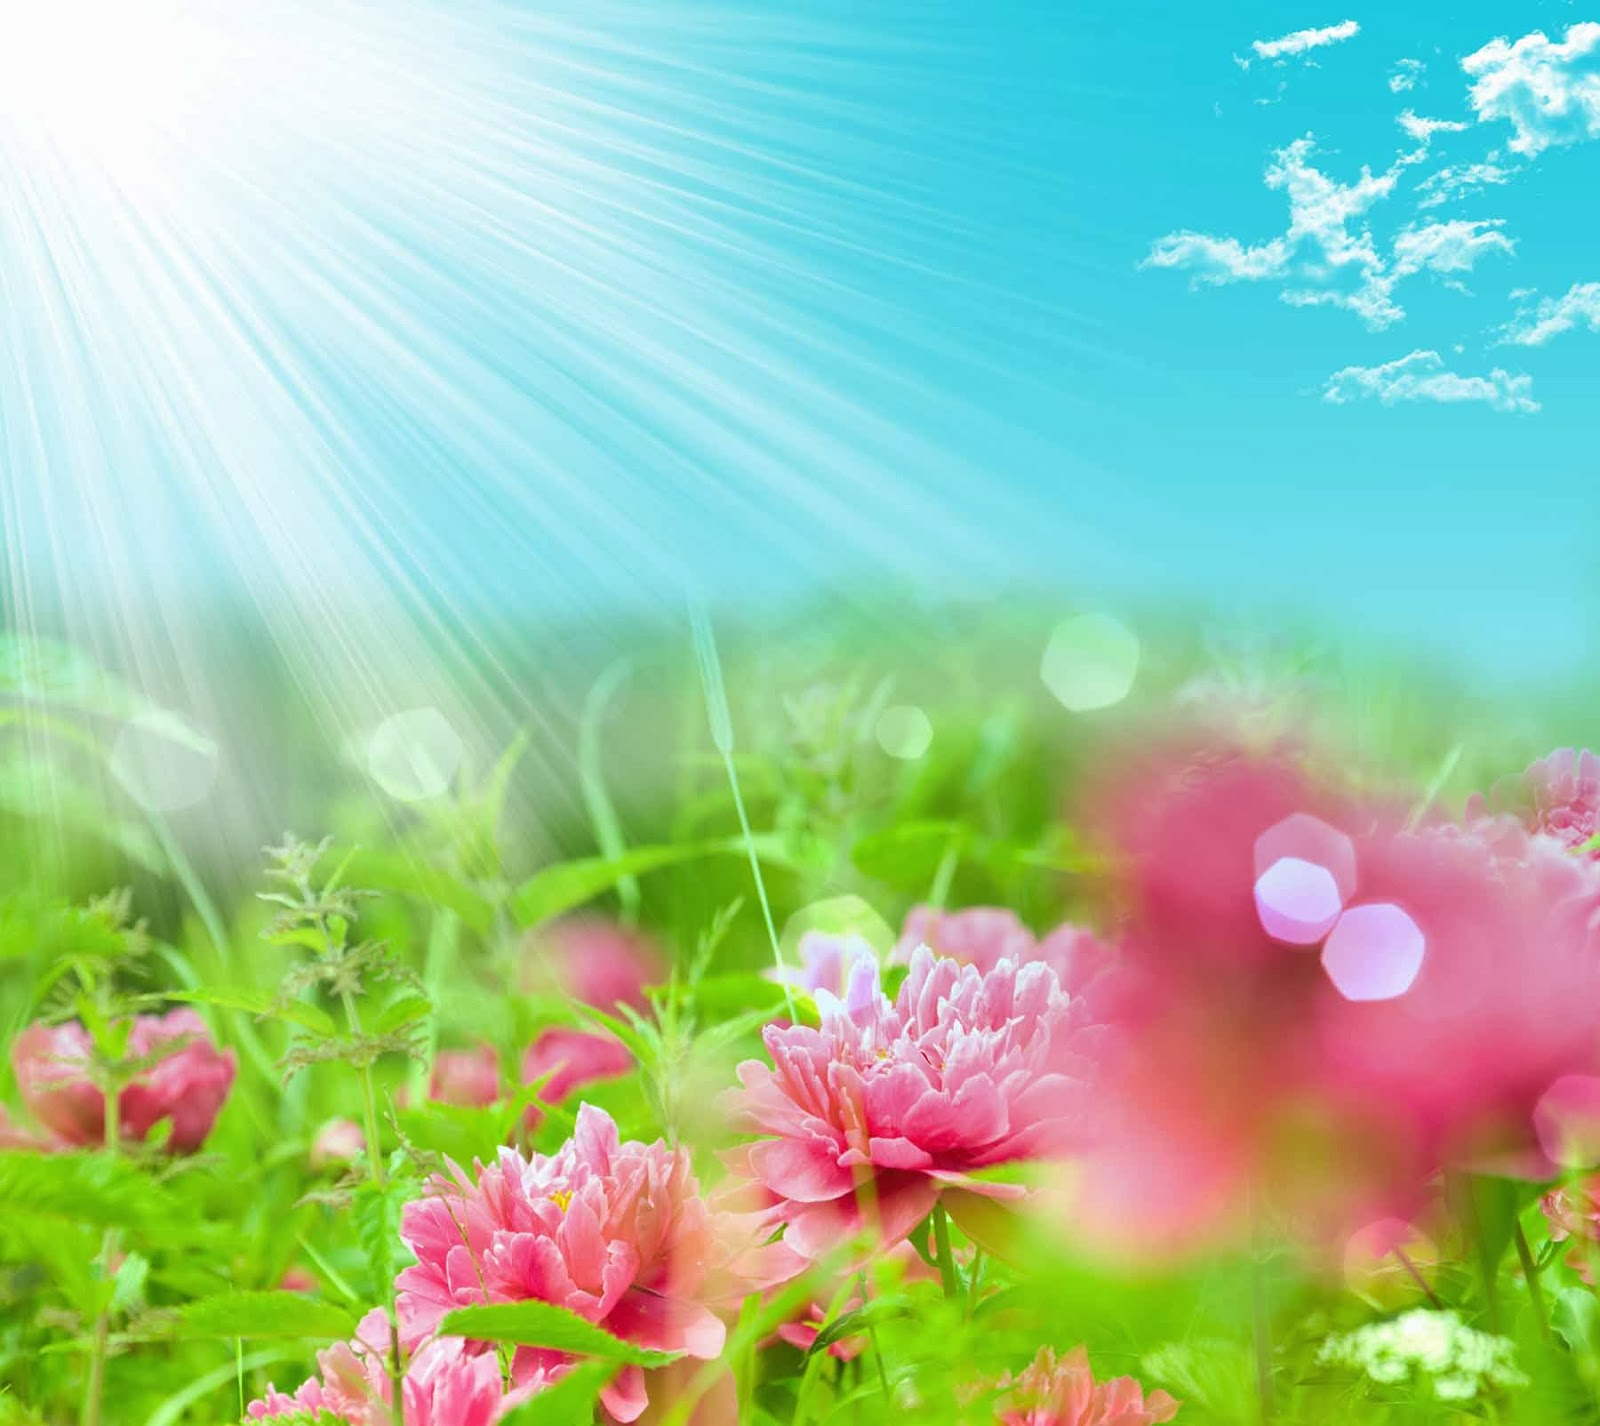 Flower Wallpapers: HQ Wallpapers: Fantasy Flower Wallpapers